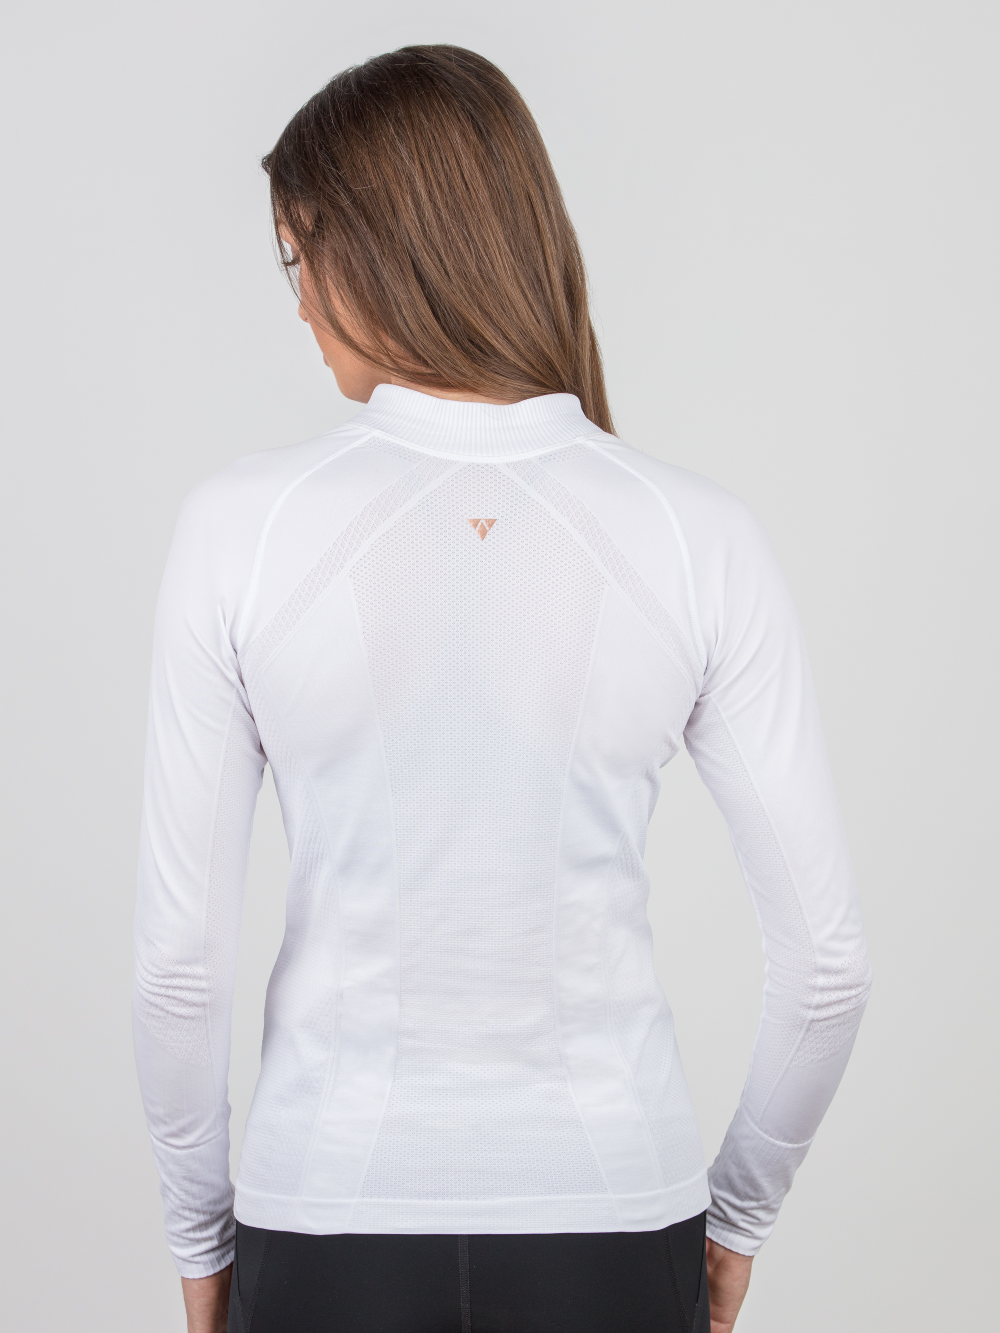 Pure White Signature Sun Shirt with Rose Gold